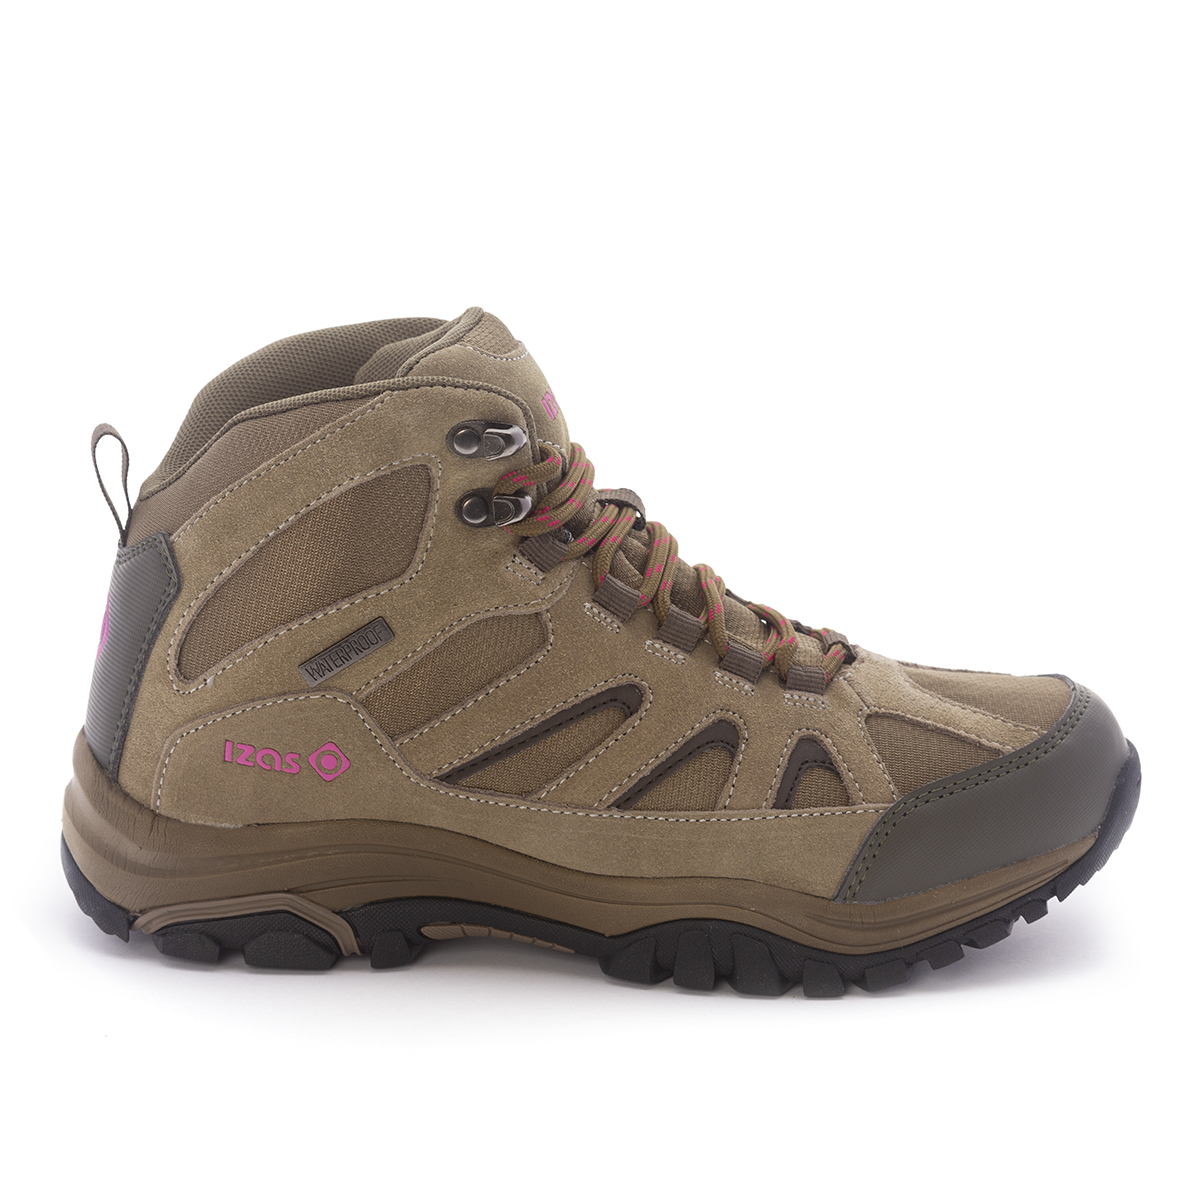 UNISEX'S TIMPA HIKING BOOTS BROWN